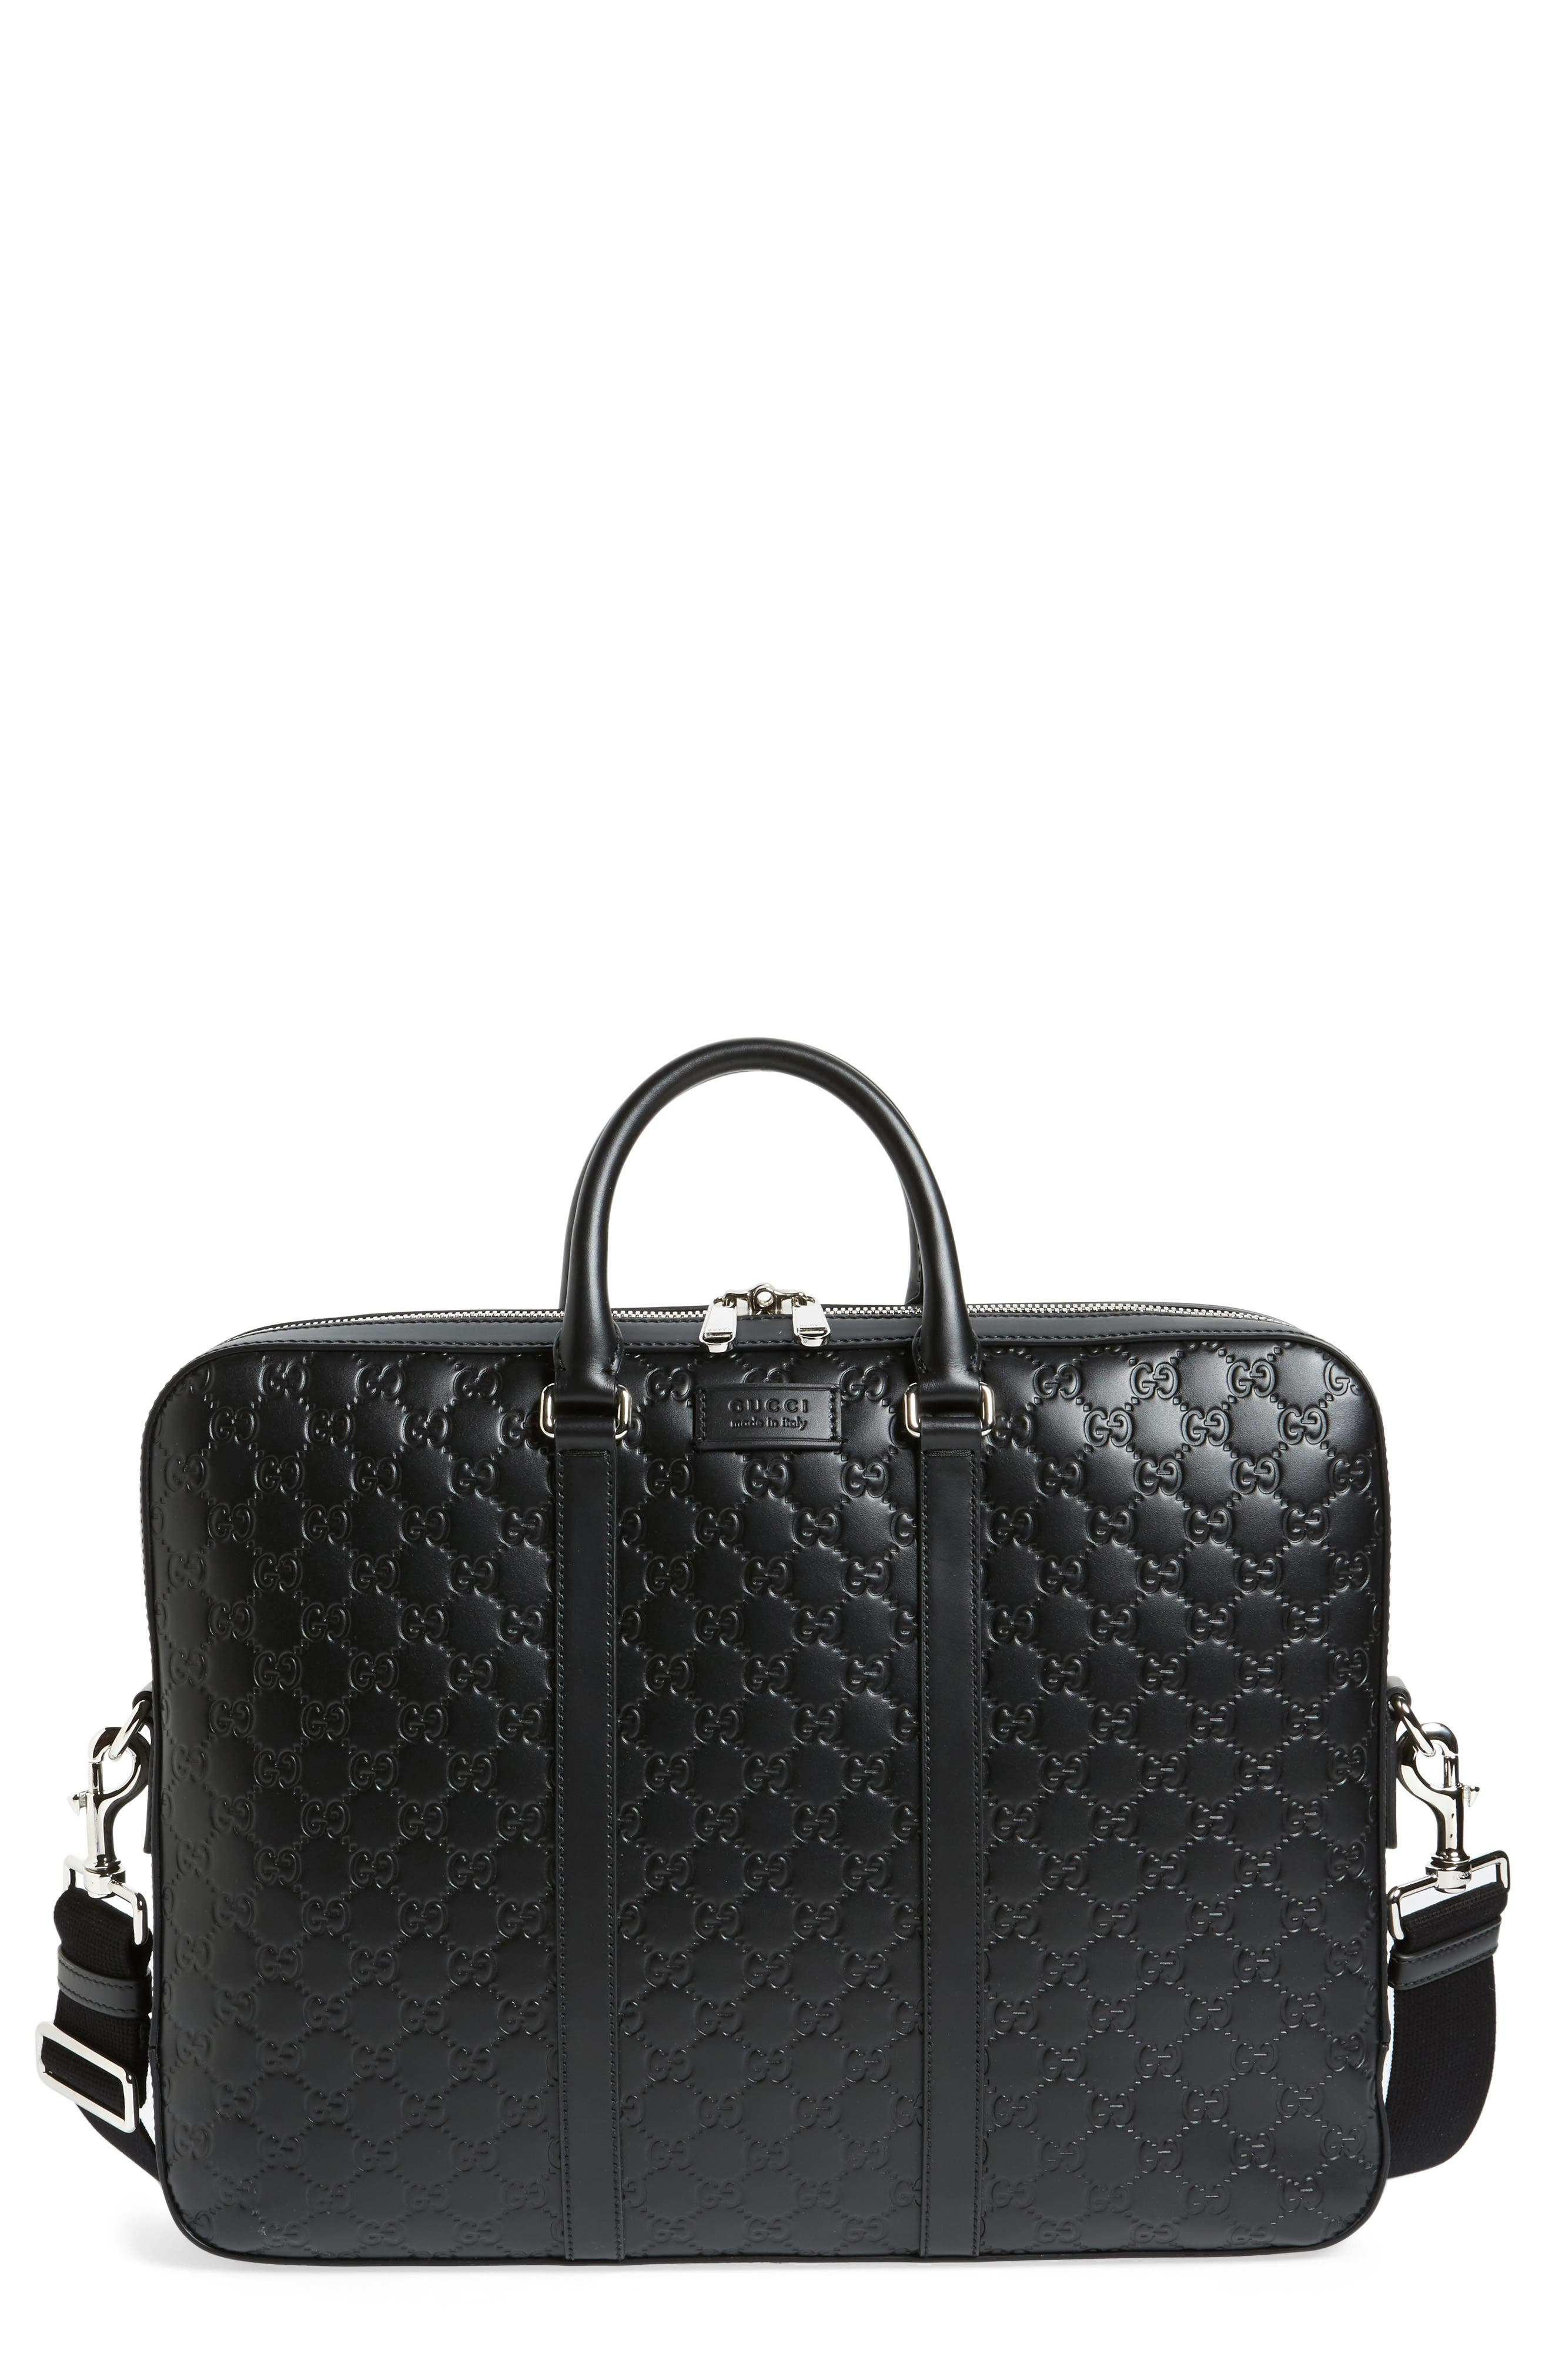 Alternate Image 1 Selected - Gucci Signature Leather Briefcase